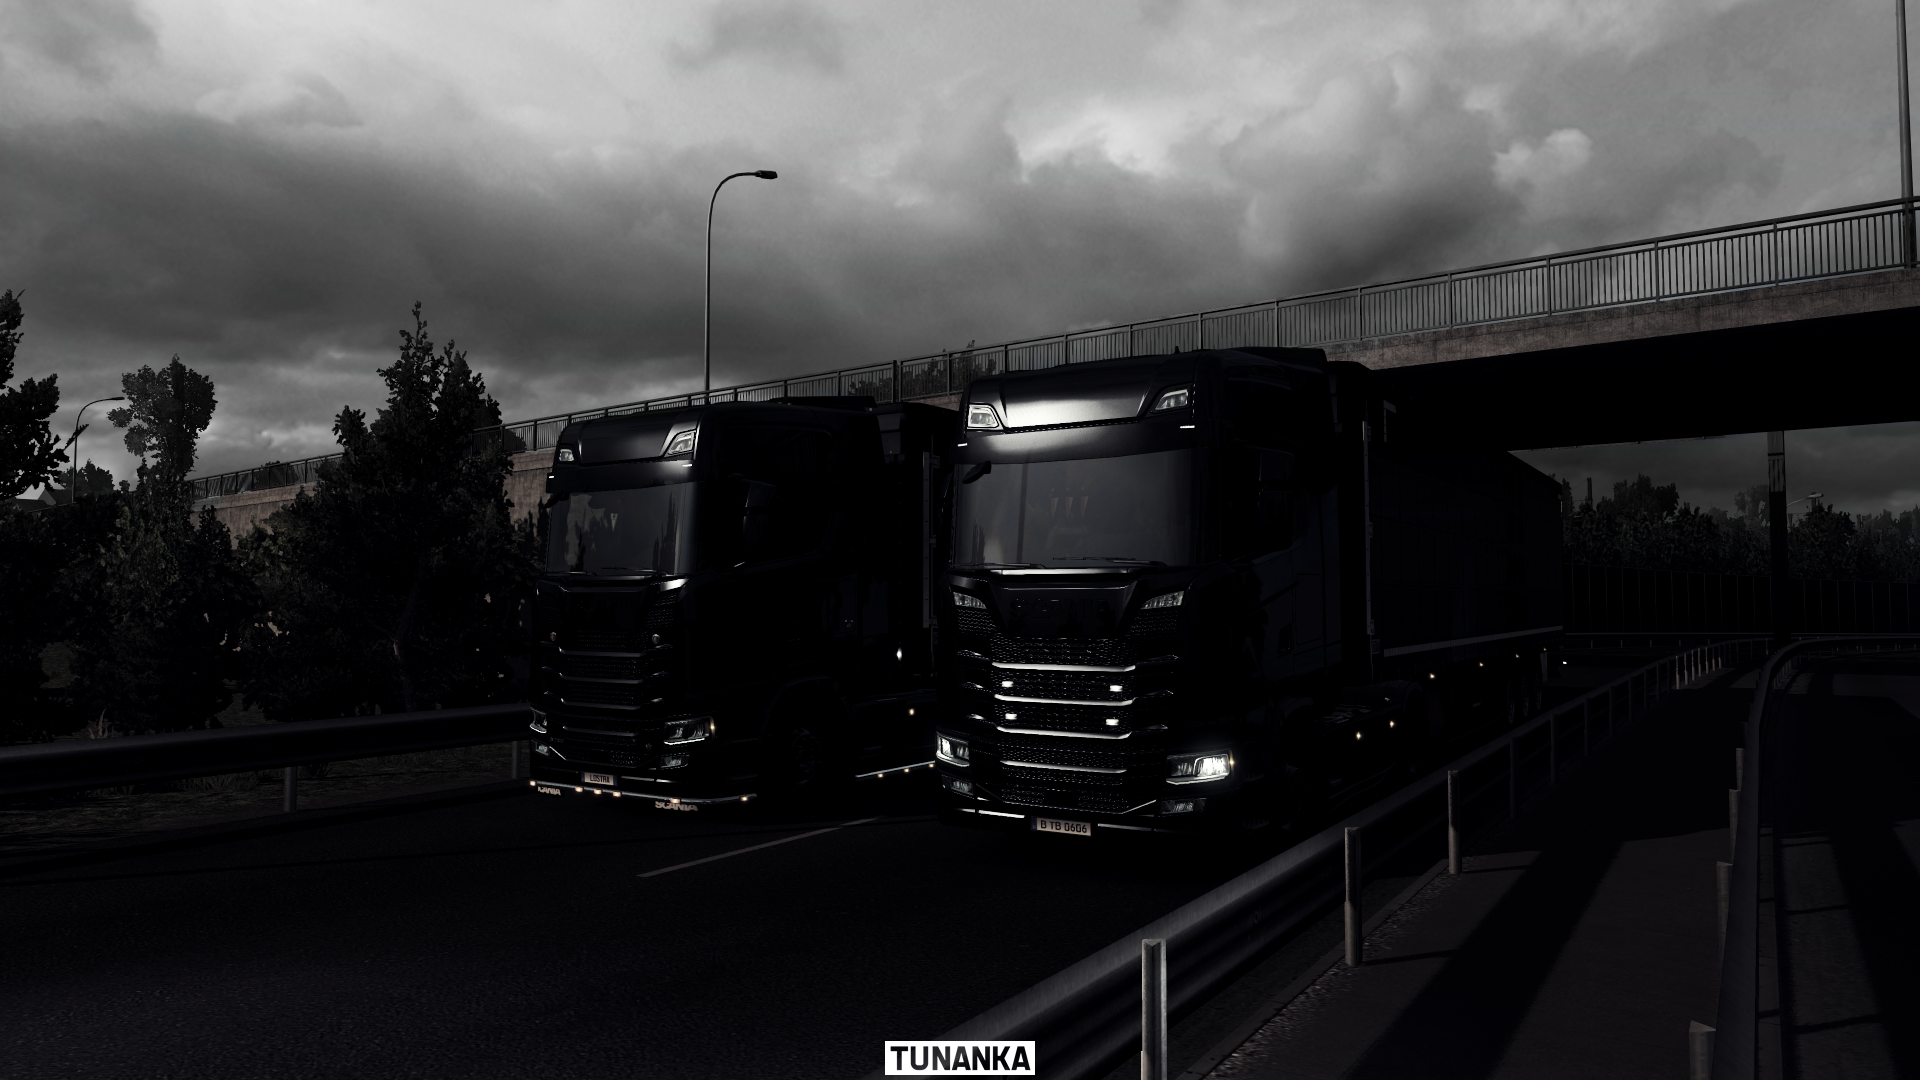 ets2_20180720_173403_00.png